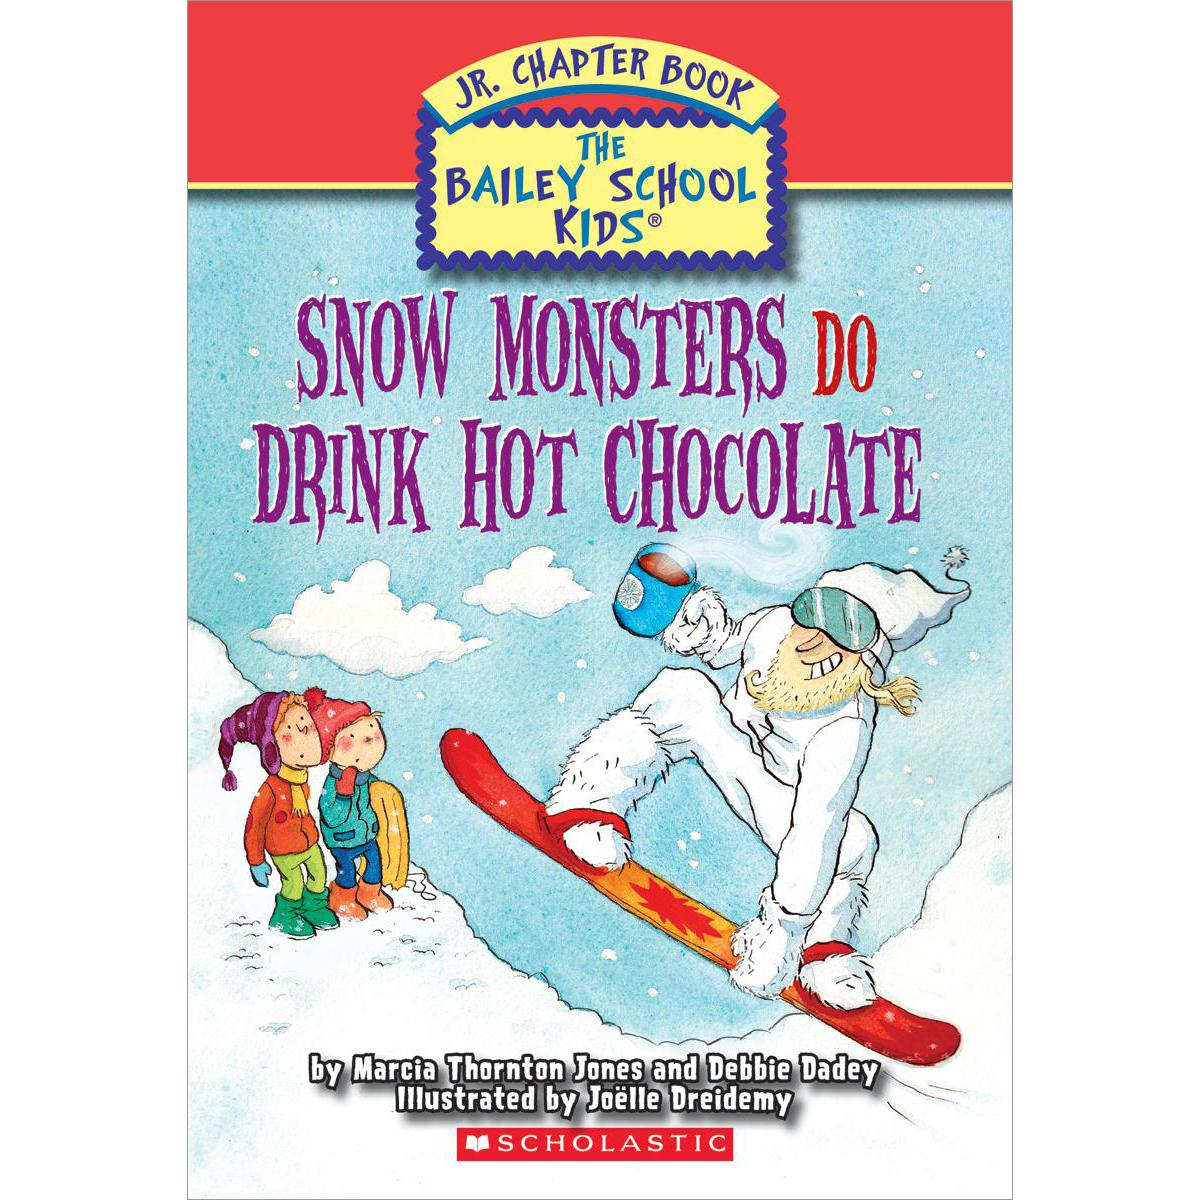 The Bailey School Kids: Snow Monsters Do Drink Hot Chocolate 10-Pack